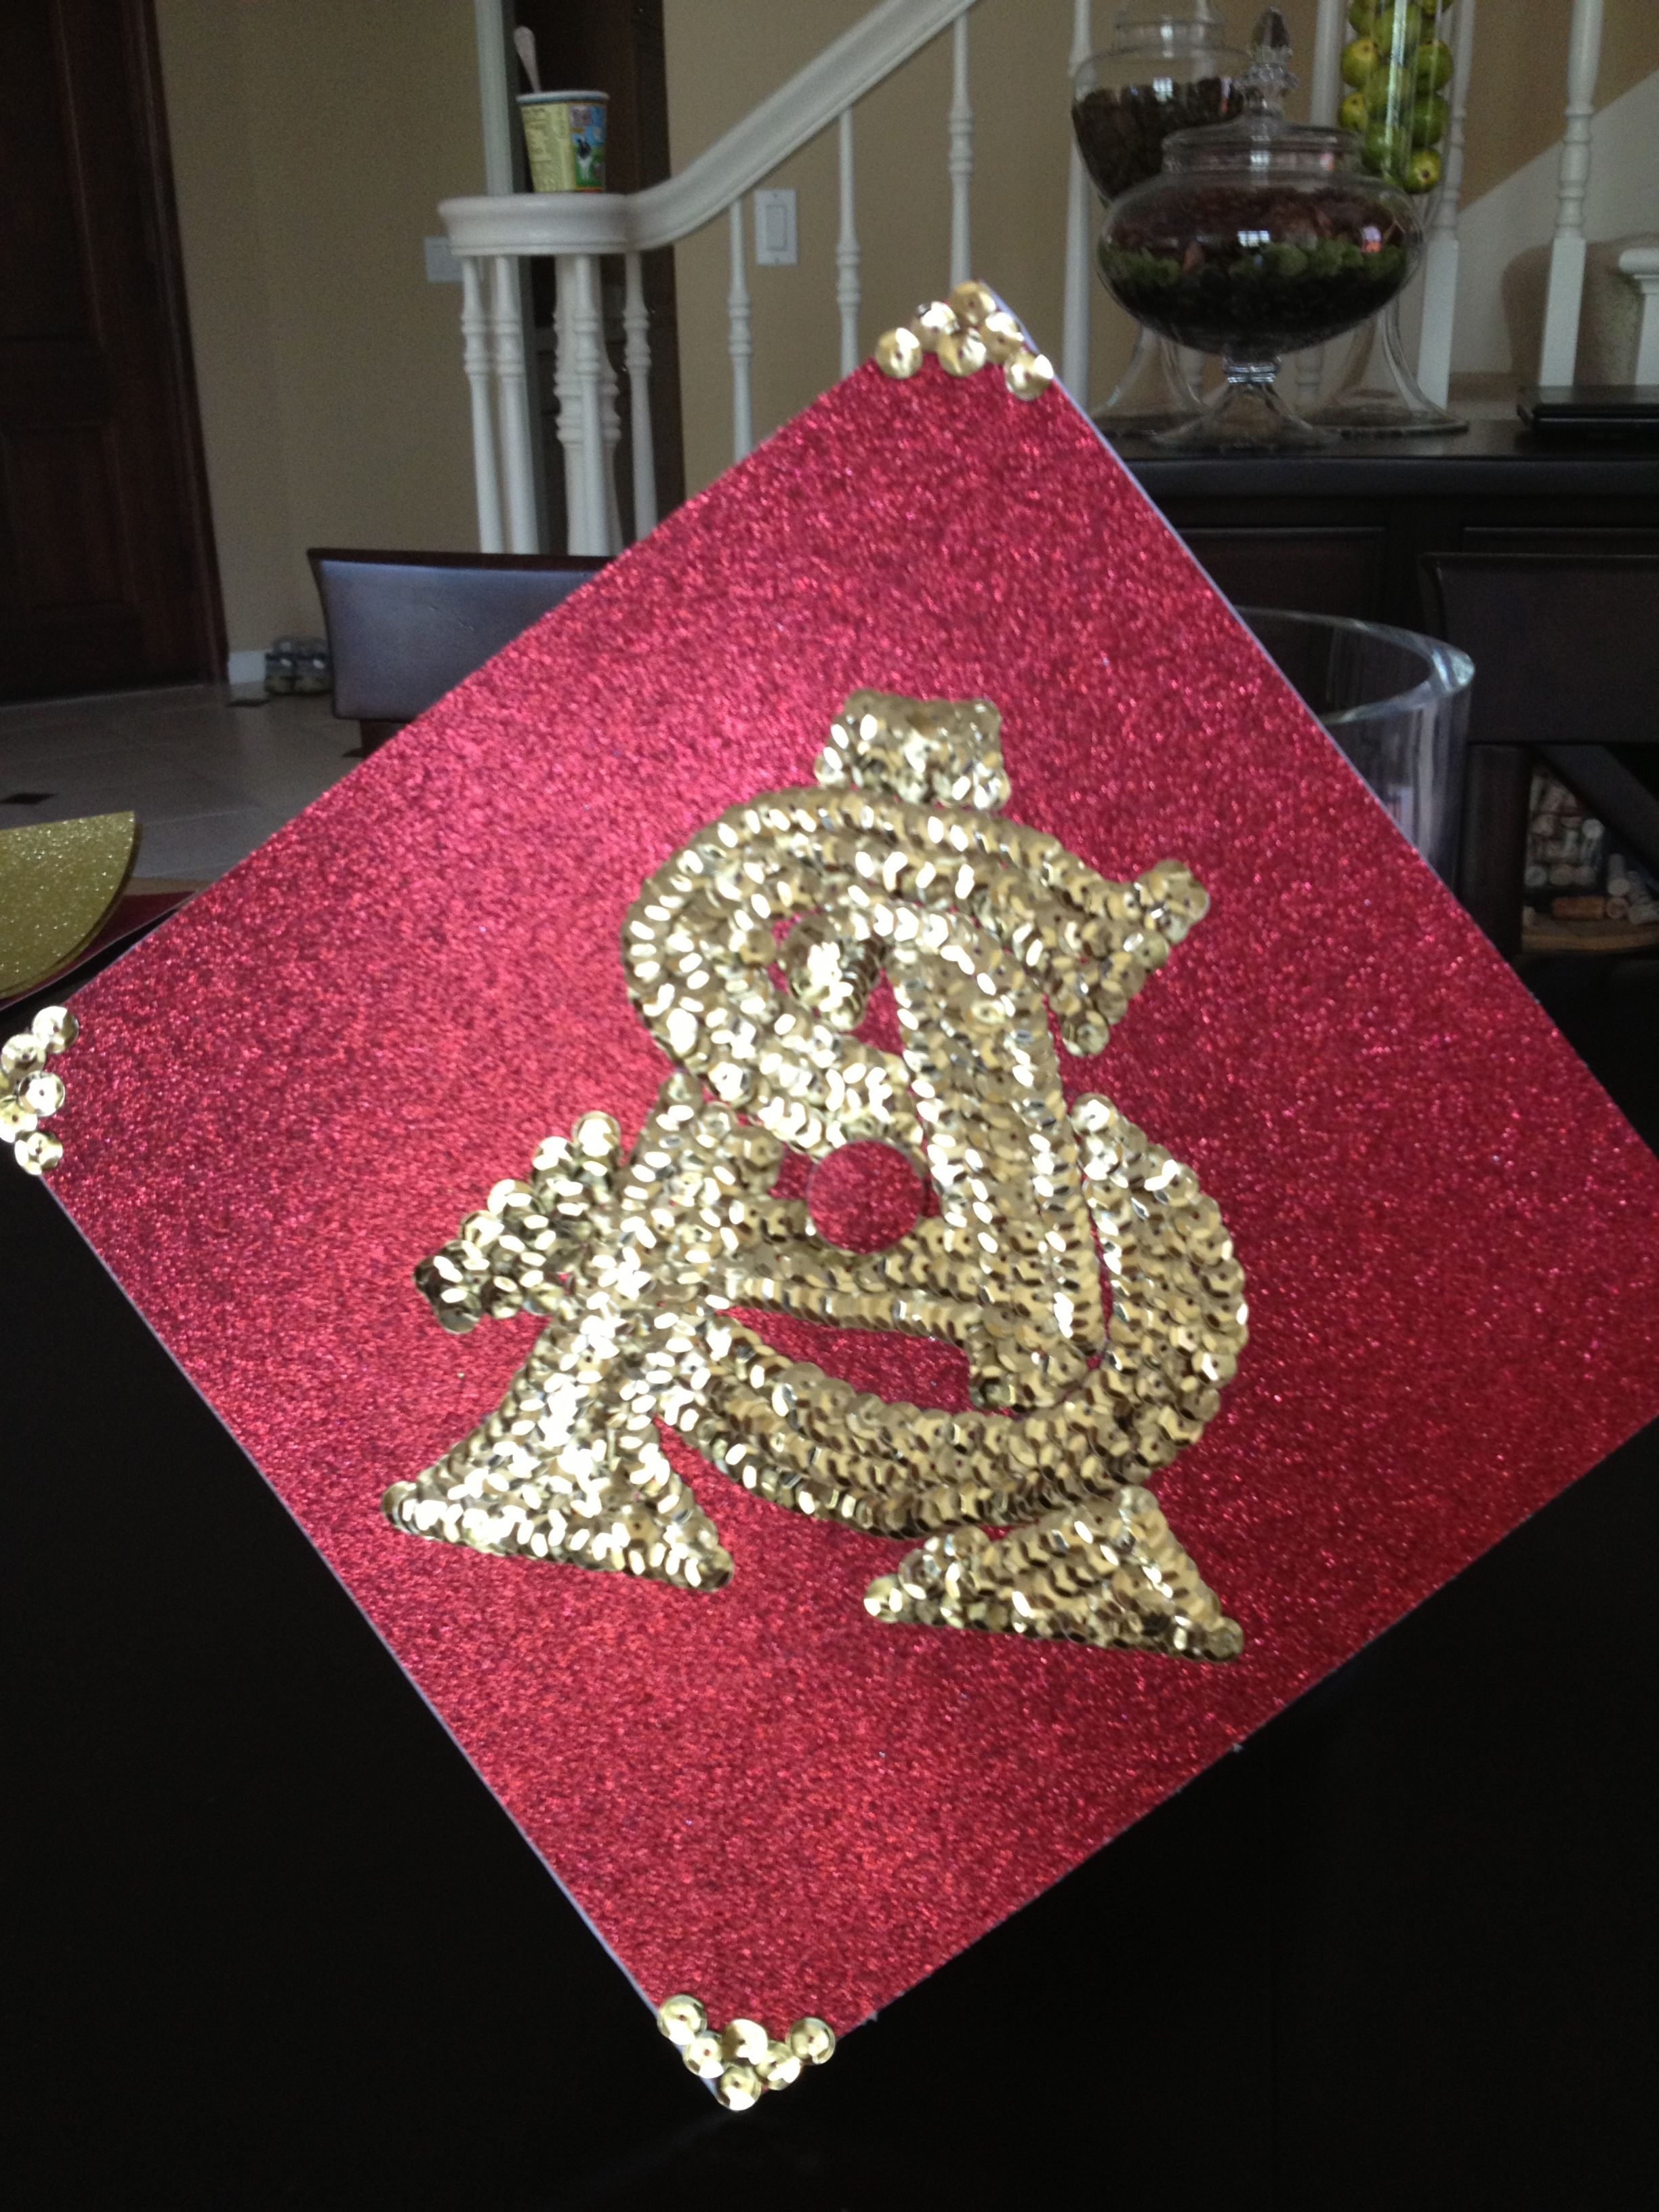 High school graduation cap  ASU  Arizona State University ... 86d6acea3857